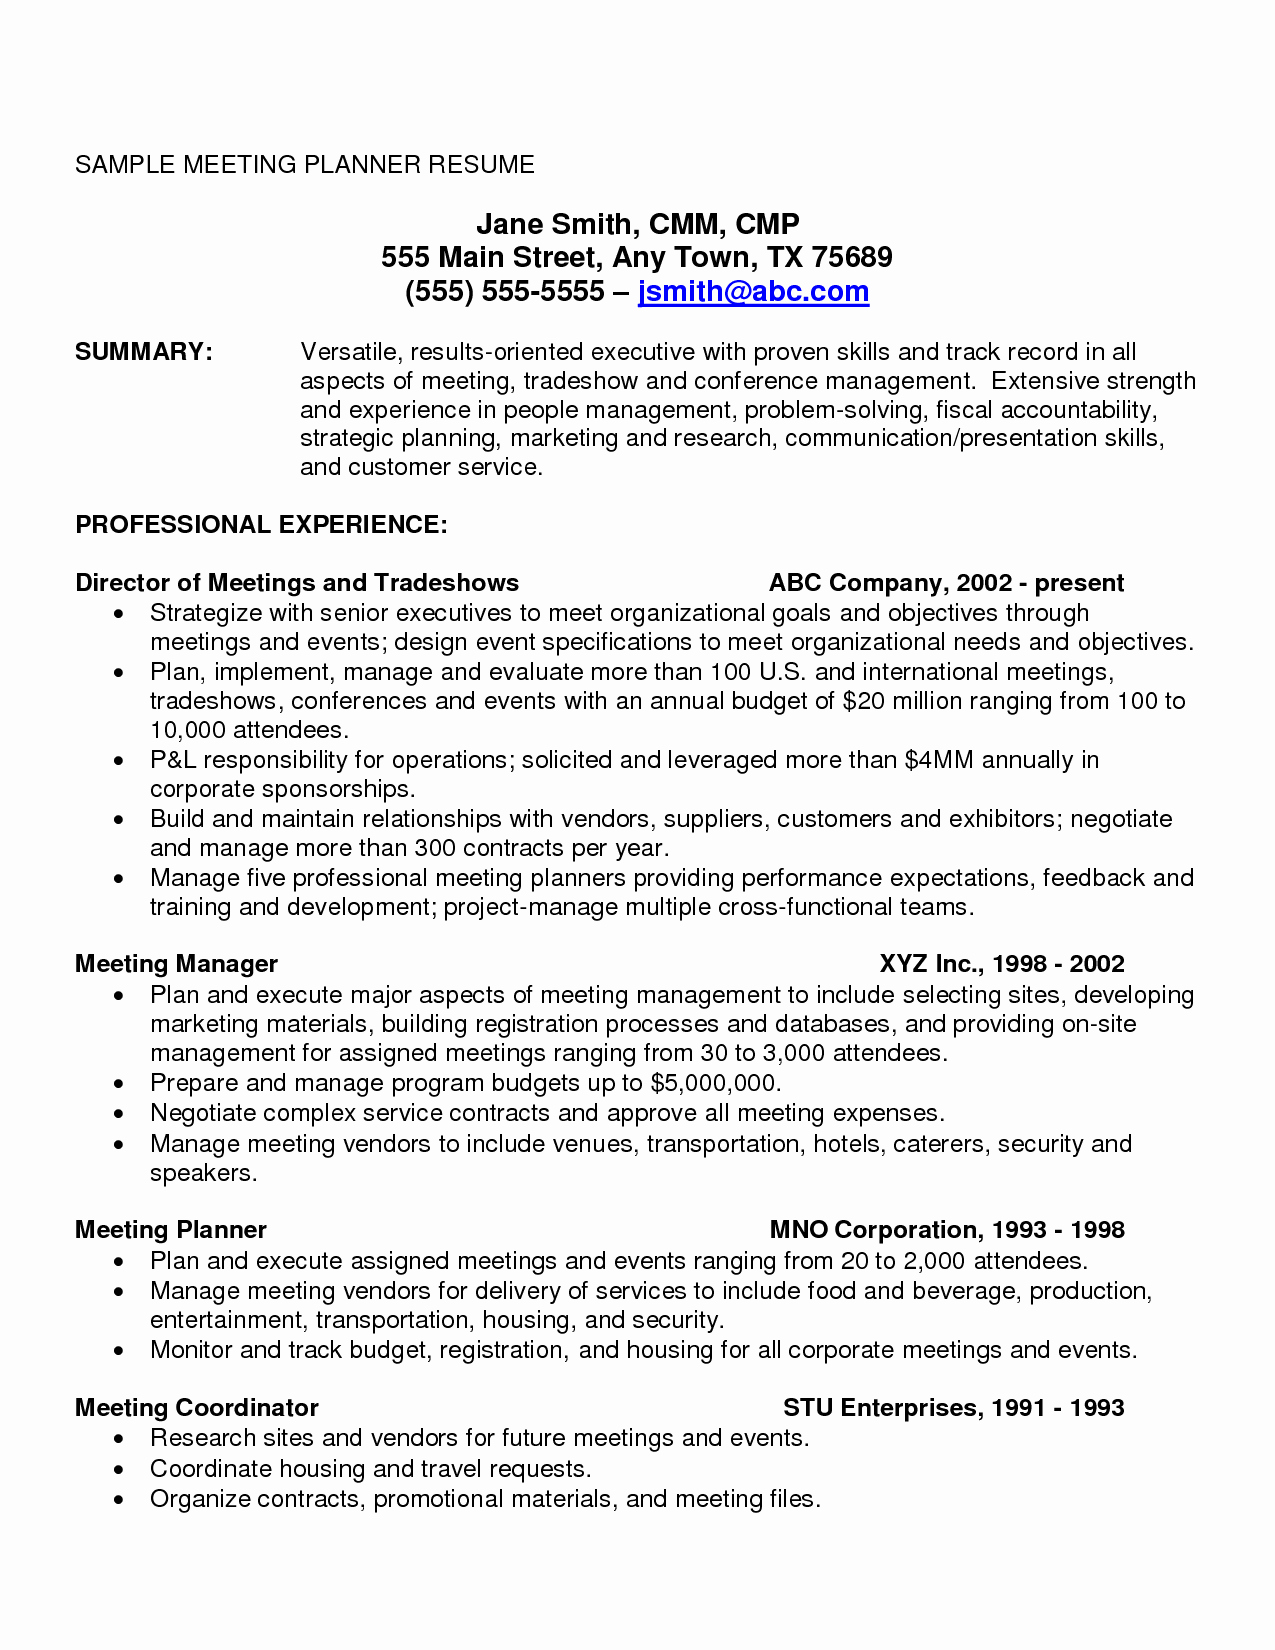 017 Event Coordinator Cover Letters Example Luxury Marketing Letter Freshsays Writers Notebook Argard Viajes Home Free Resume Creative Target Market Importance Internship Directsay Wondrous Fresh Essays Contact Customer Service Number Full